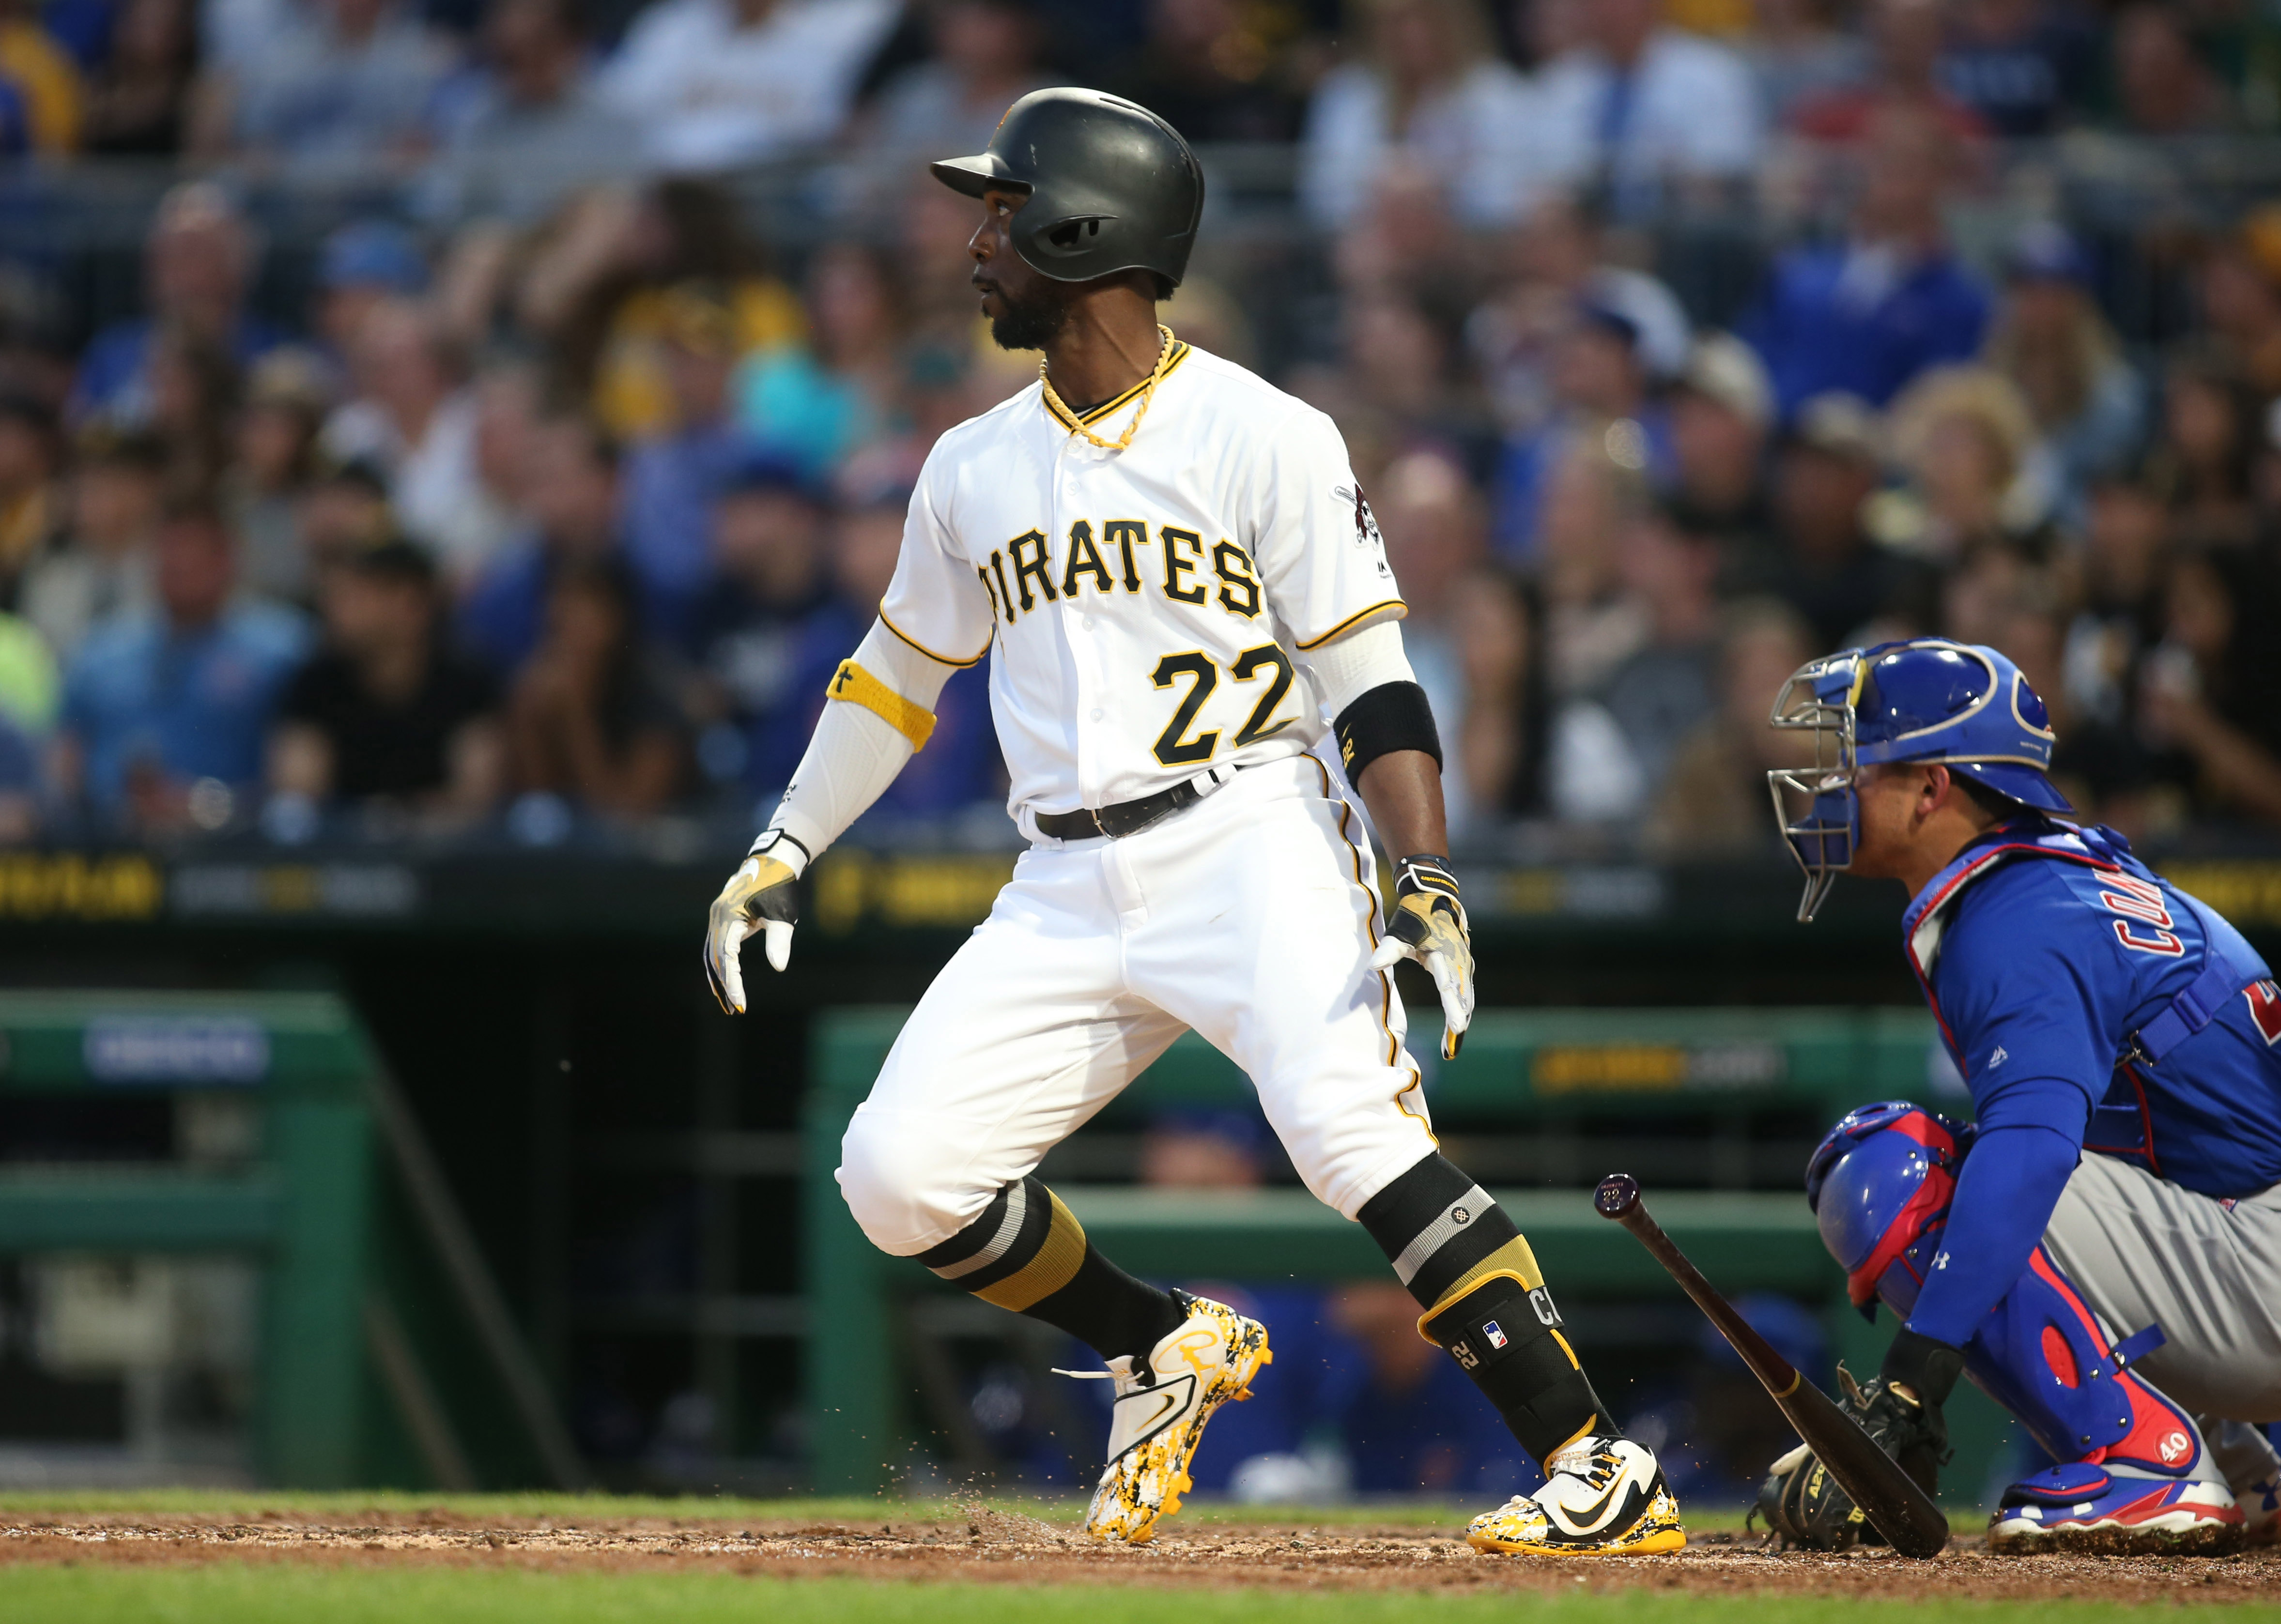 10032326-mlb-chicago-cubs-at-pittsburgh-pirates